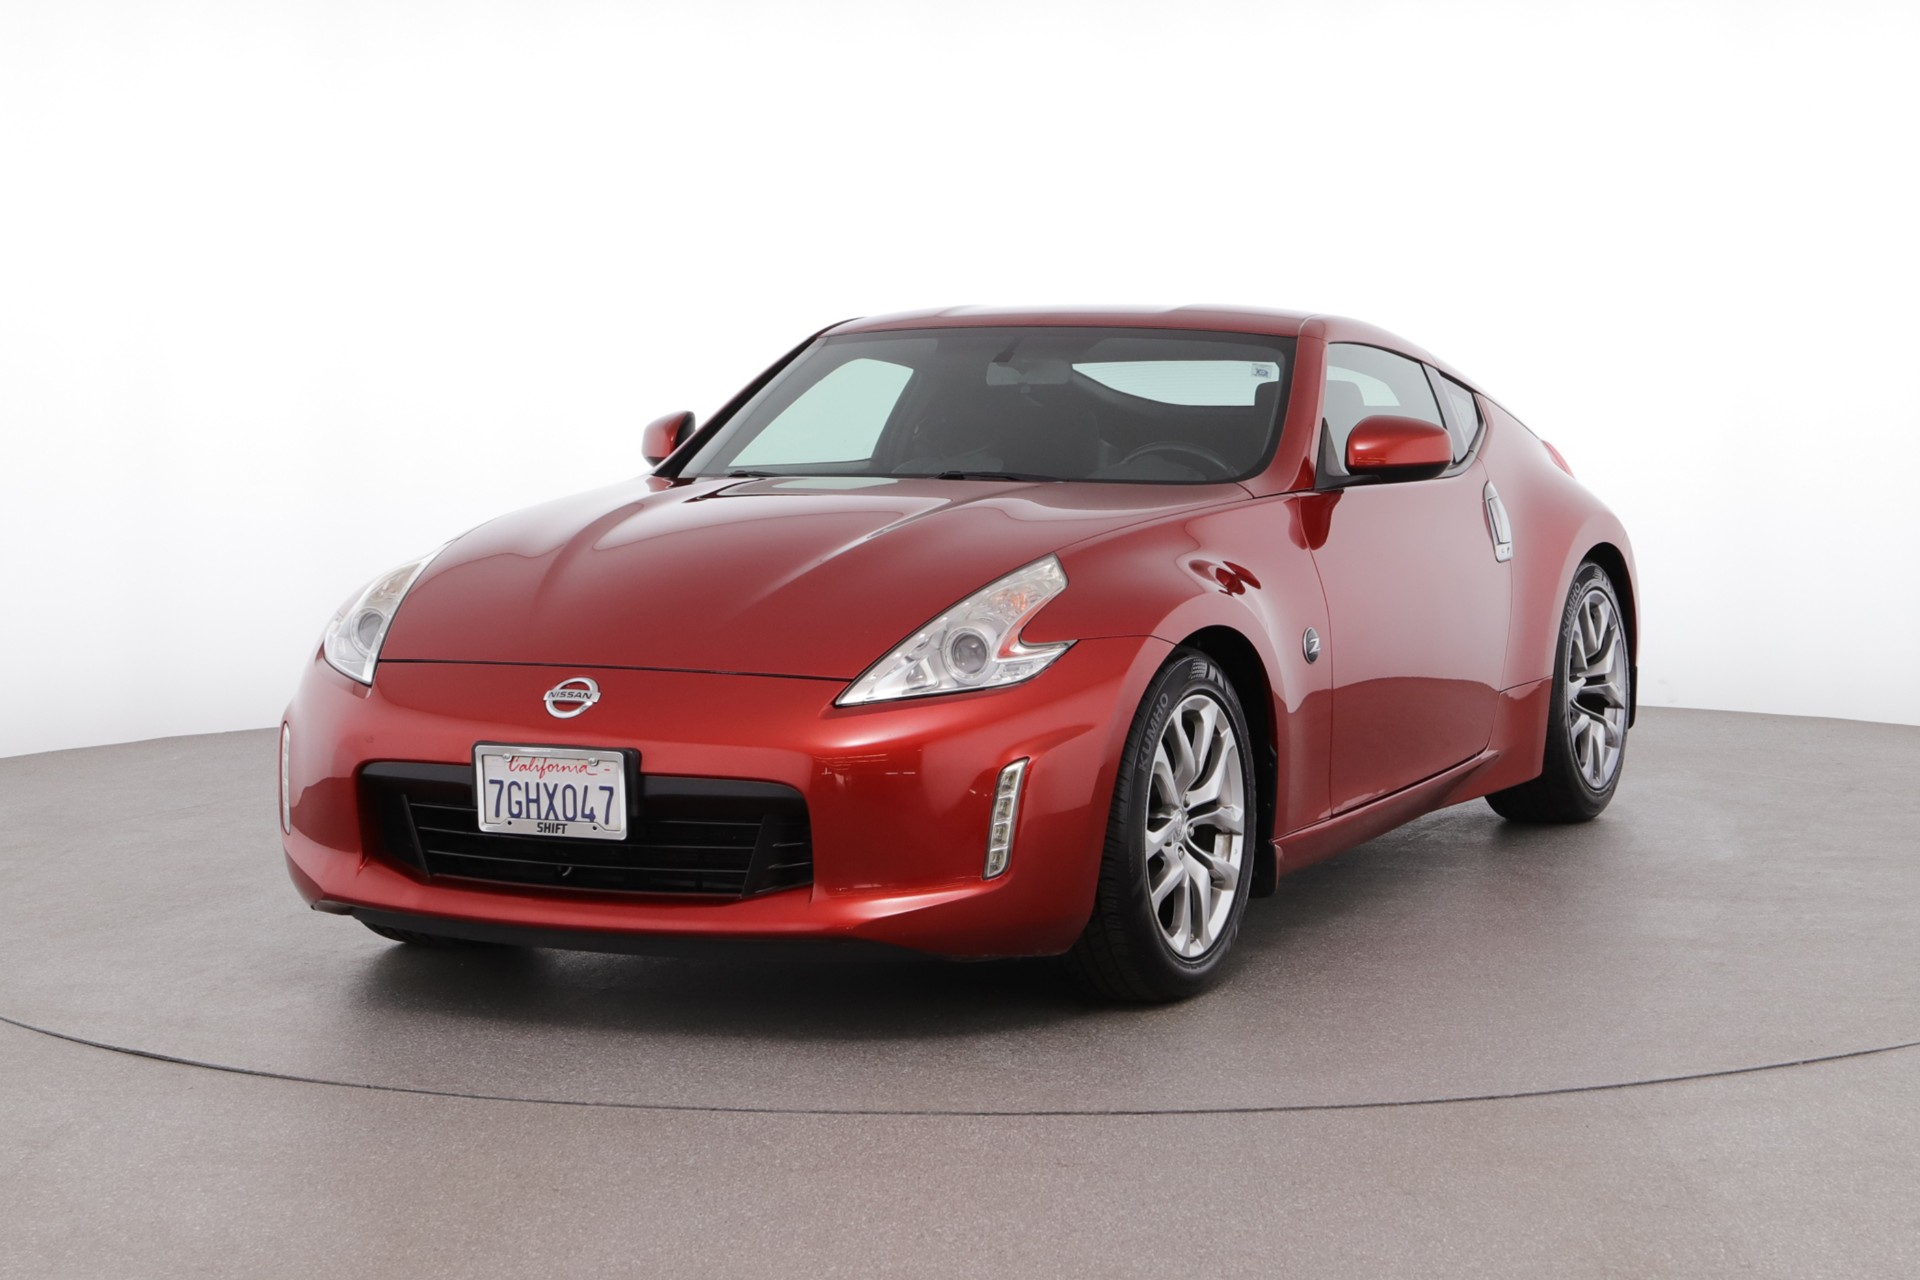 2014 Nissan 370Z (from $22,700)